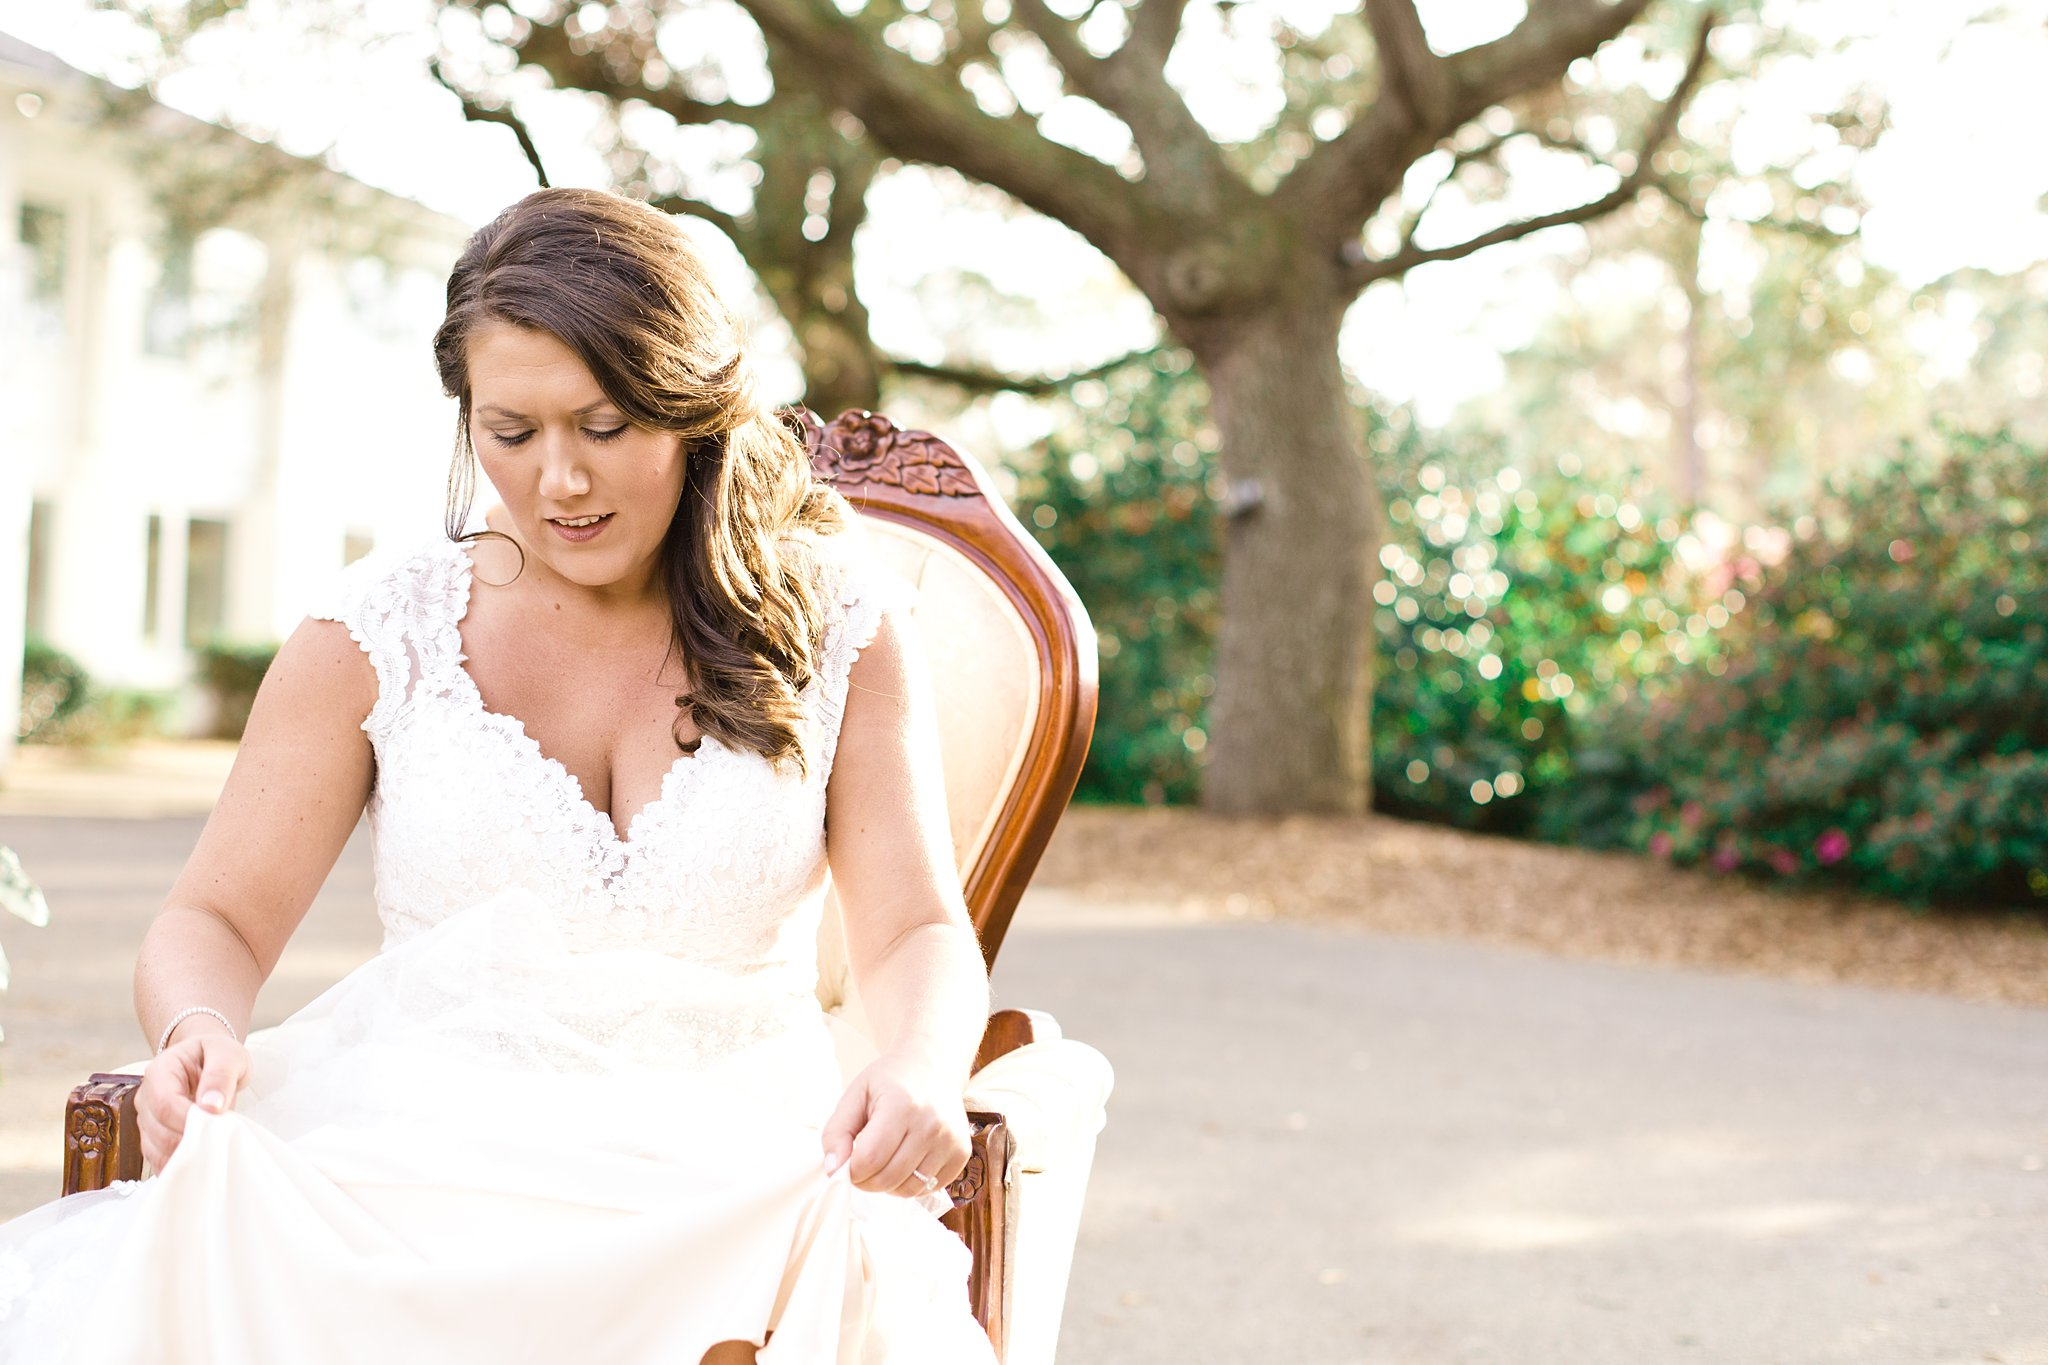 litchfield-golf-country-club-bridal-session-pawleys-island-sc-photos_0141.jpg